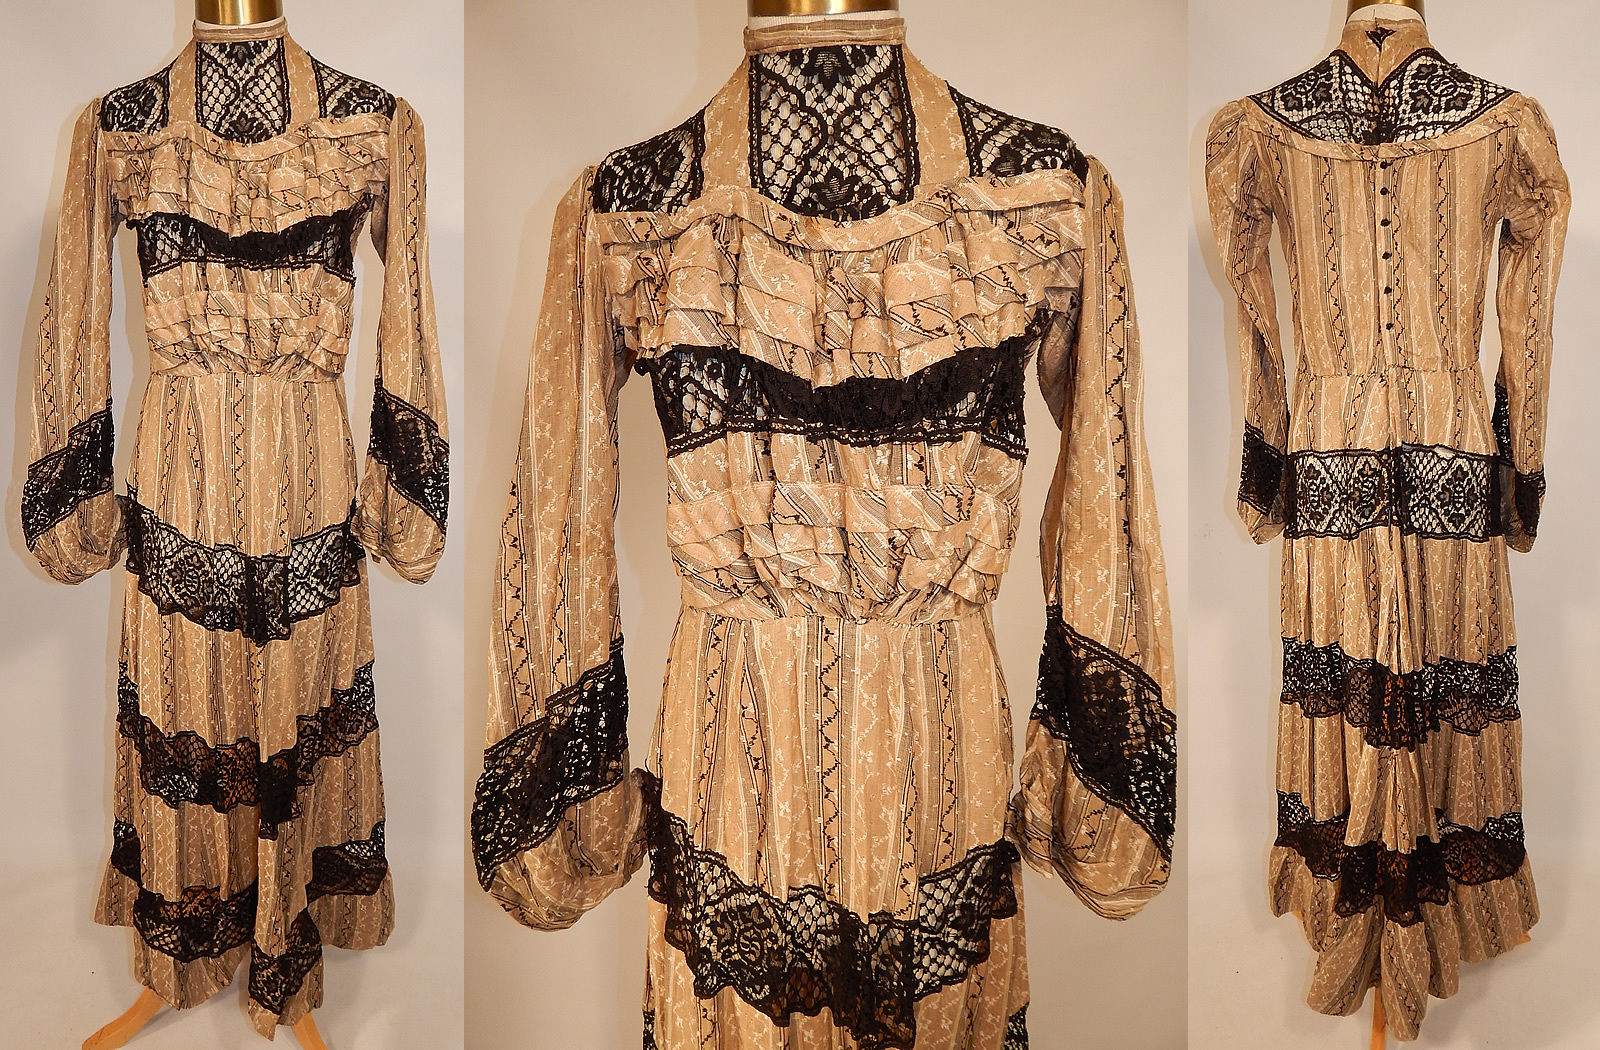 All The Pretty Dresses: Early Edwardian Dress with Black Lace